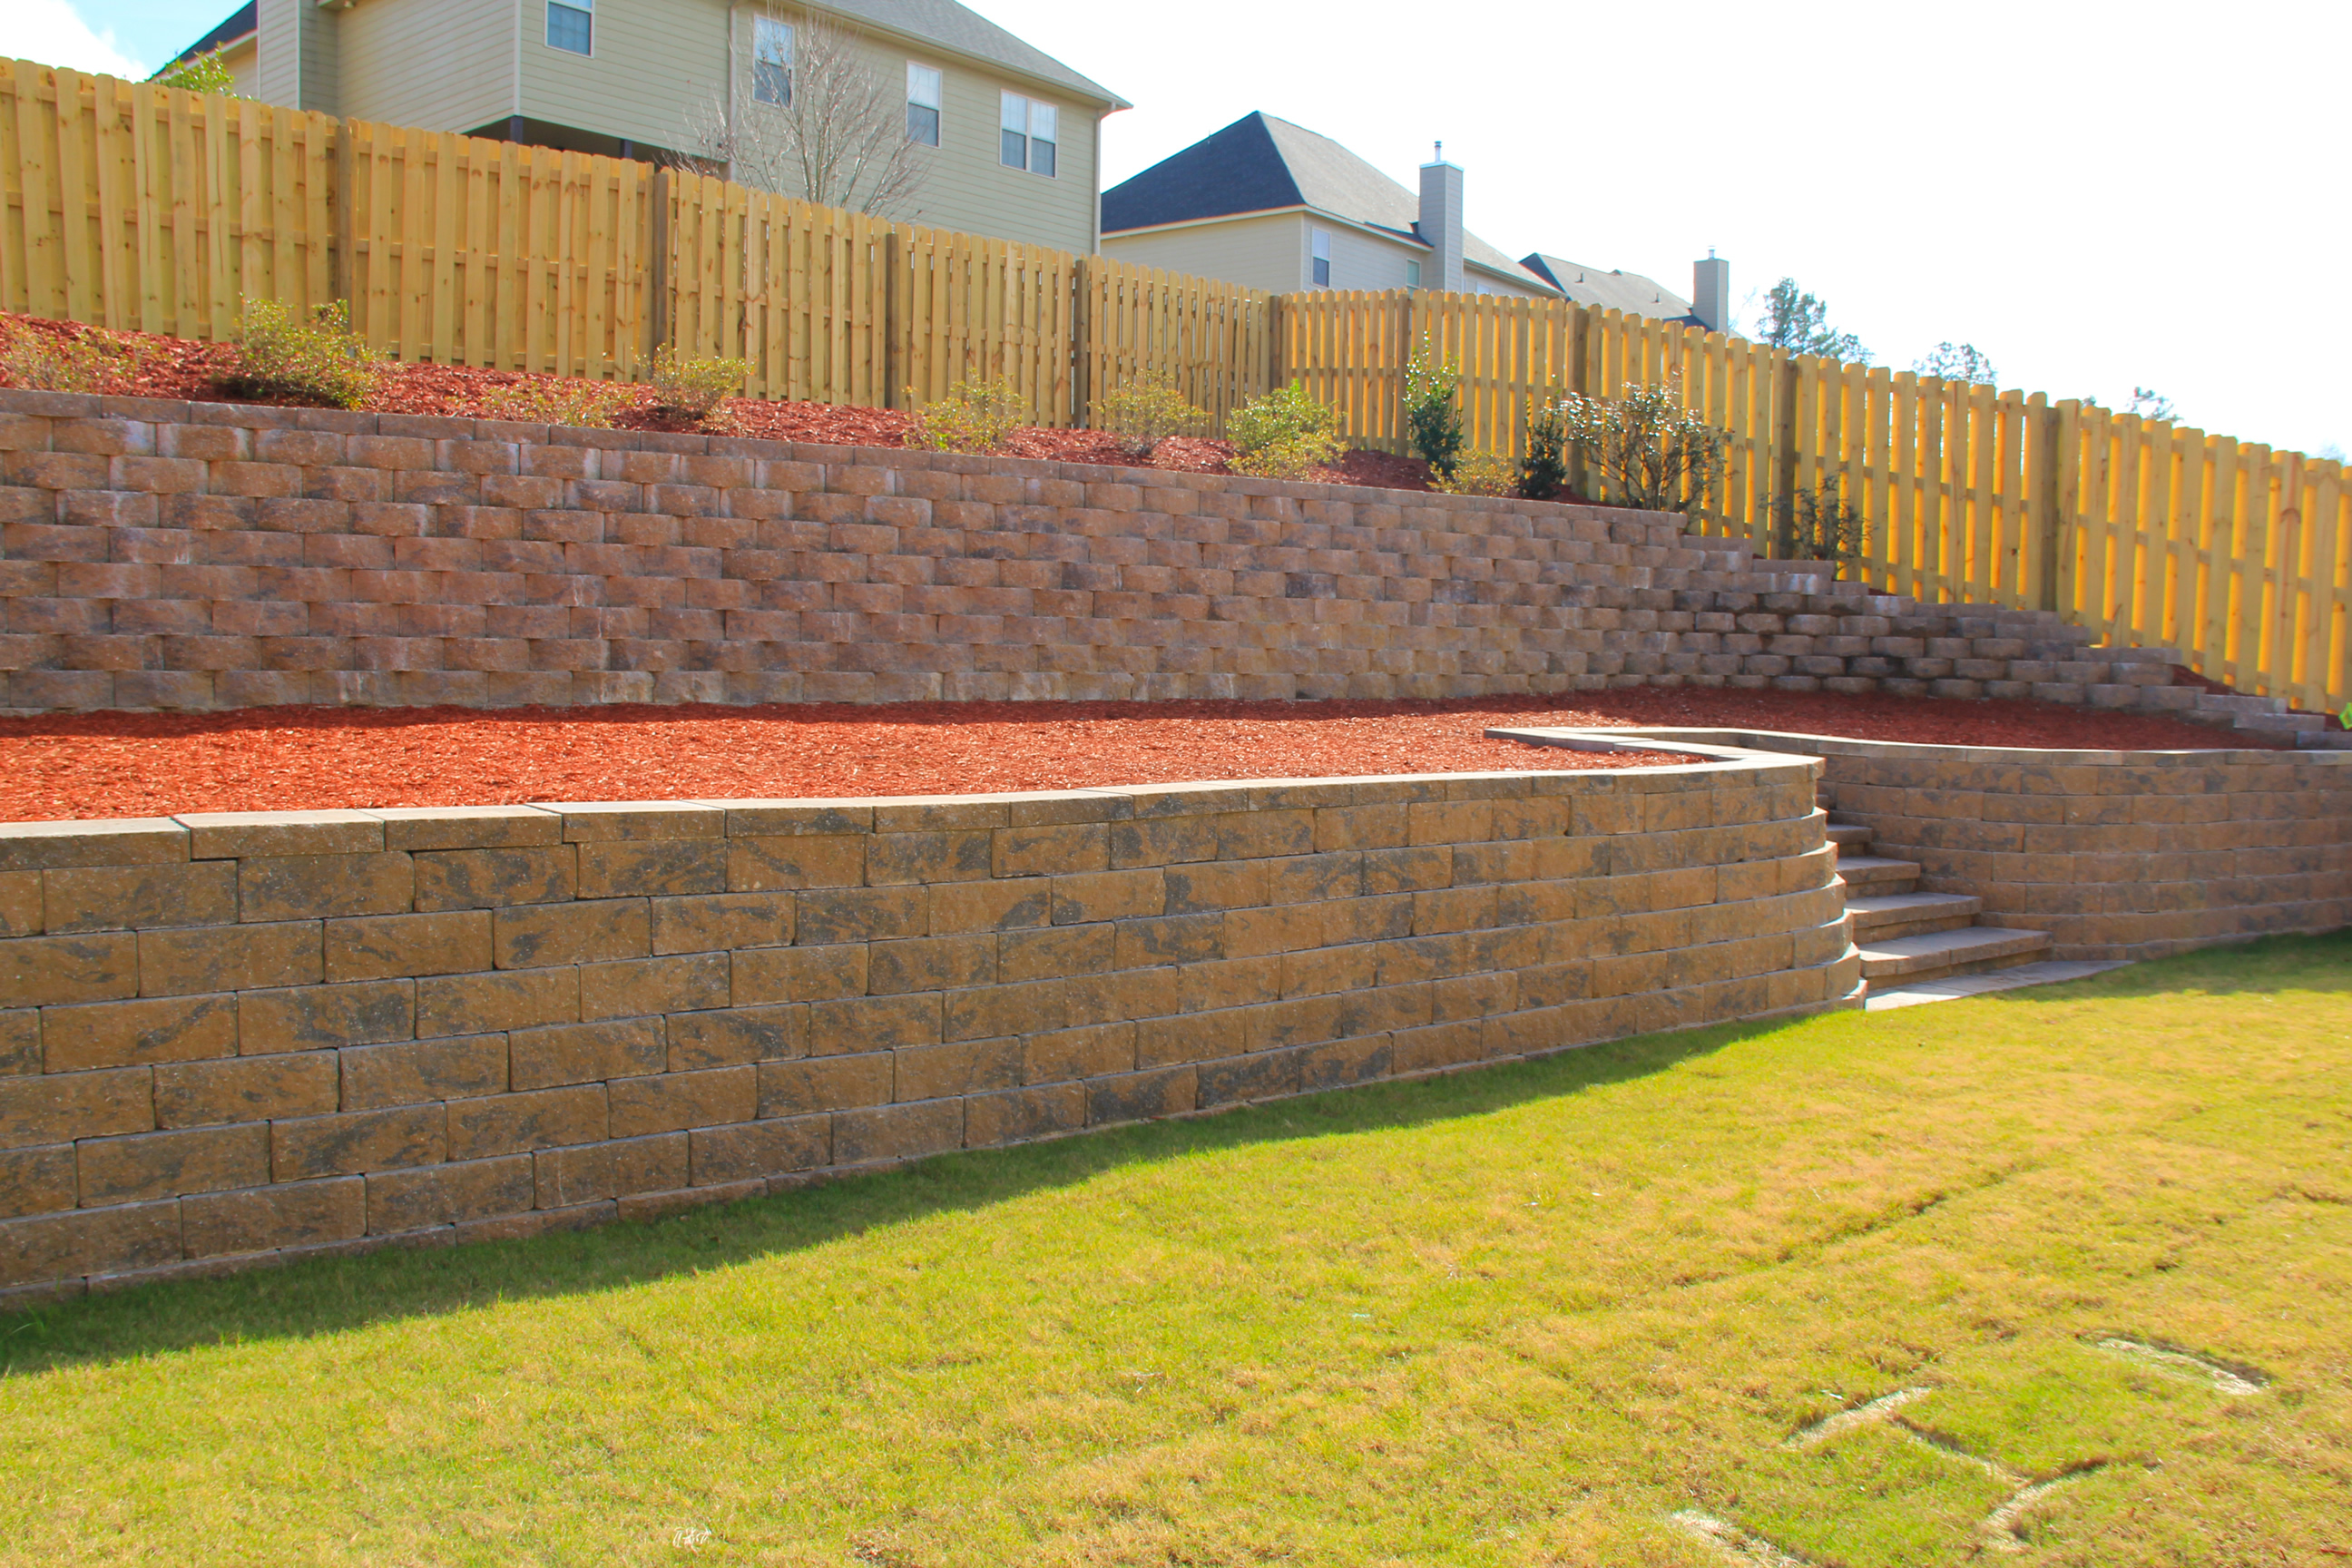 Retaining Walls Erosion Control Landscaping Lawn Care